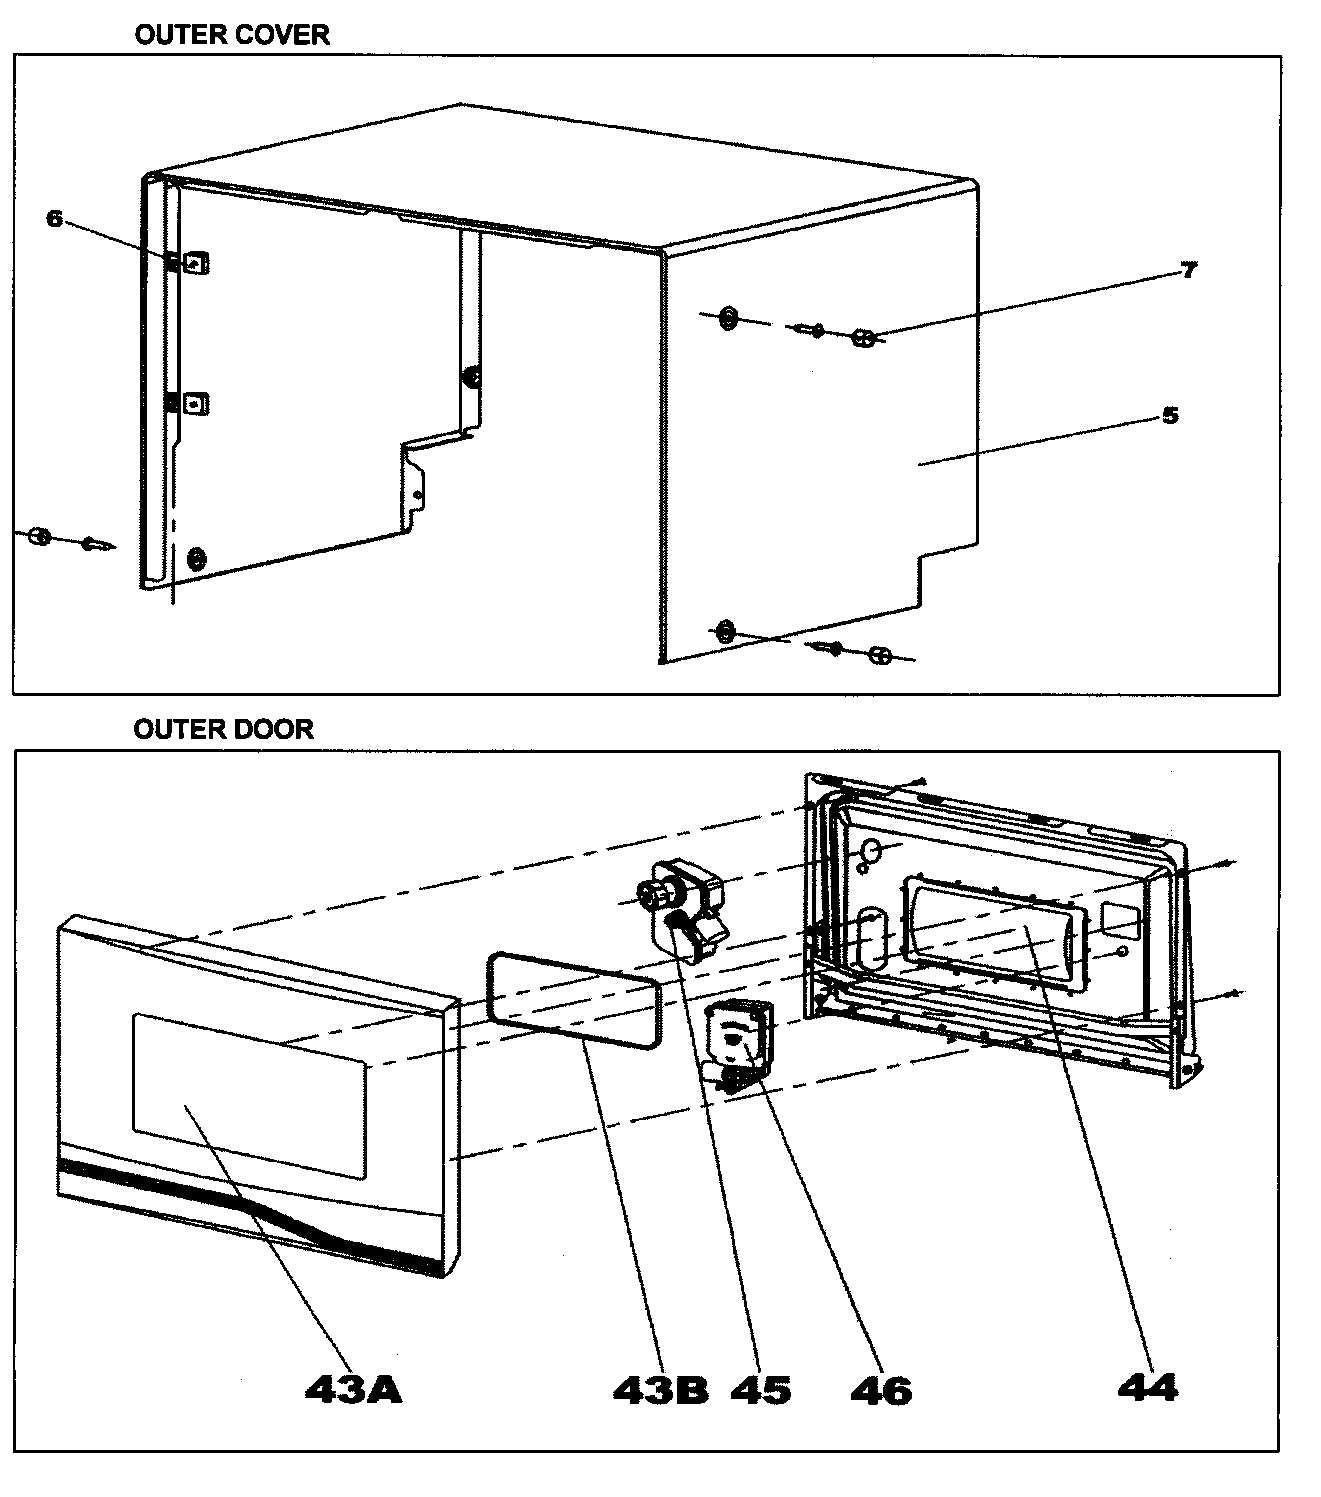 Danby DDW396W outer cover/outer door diagram